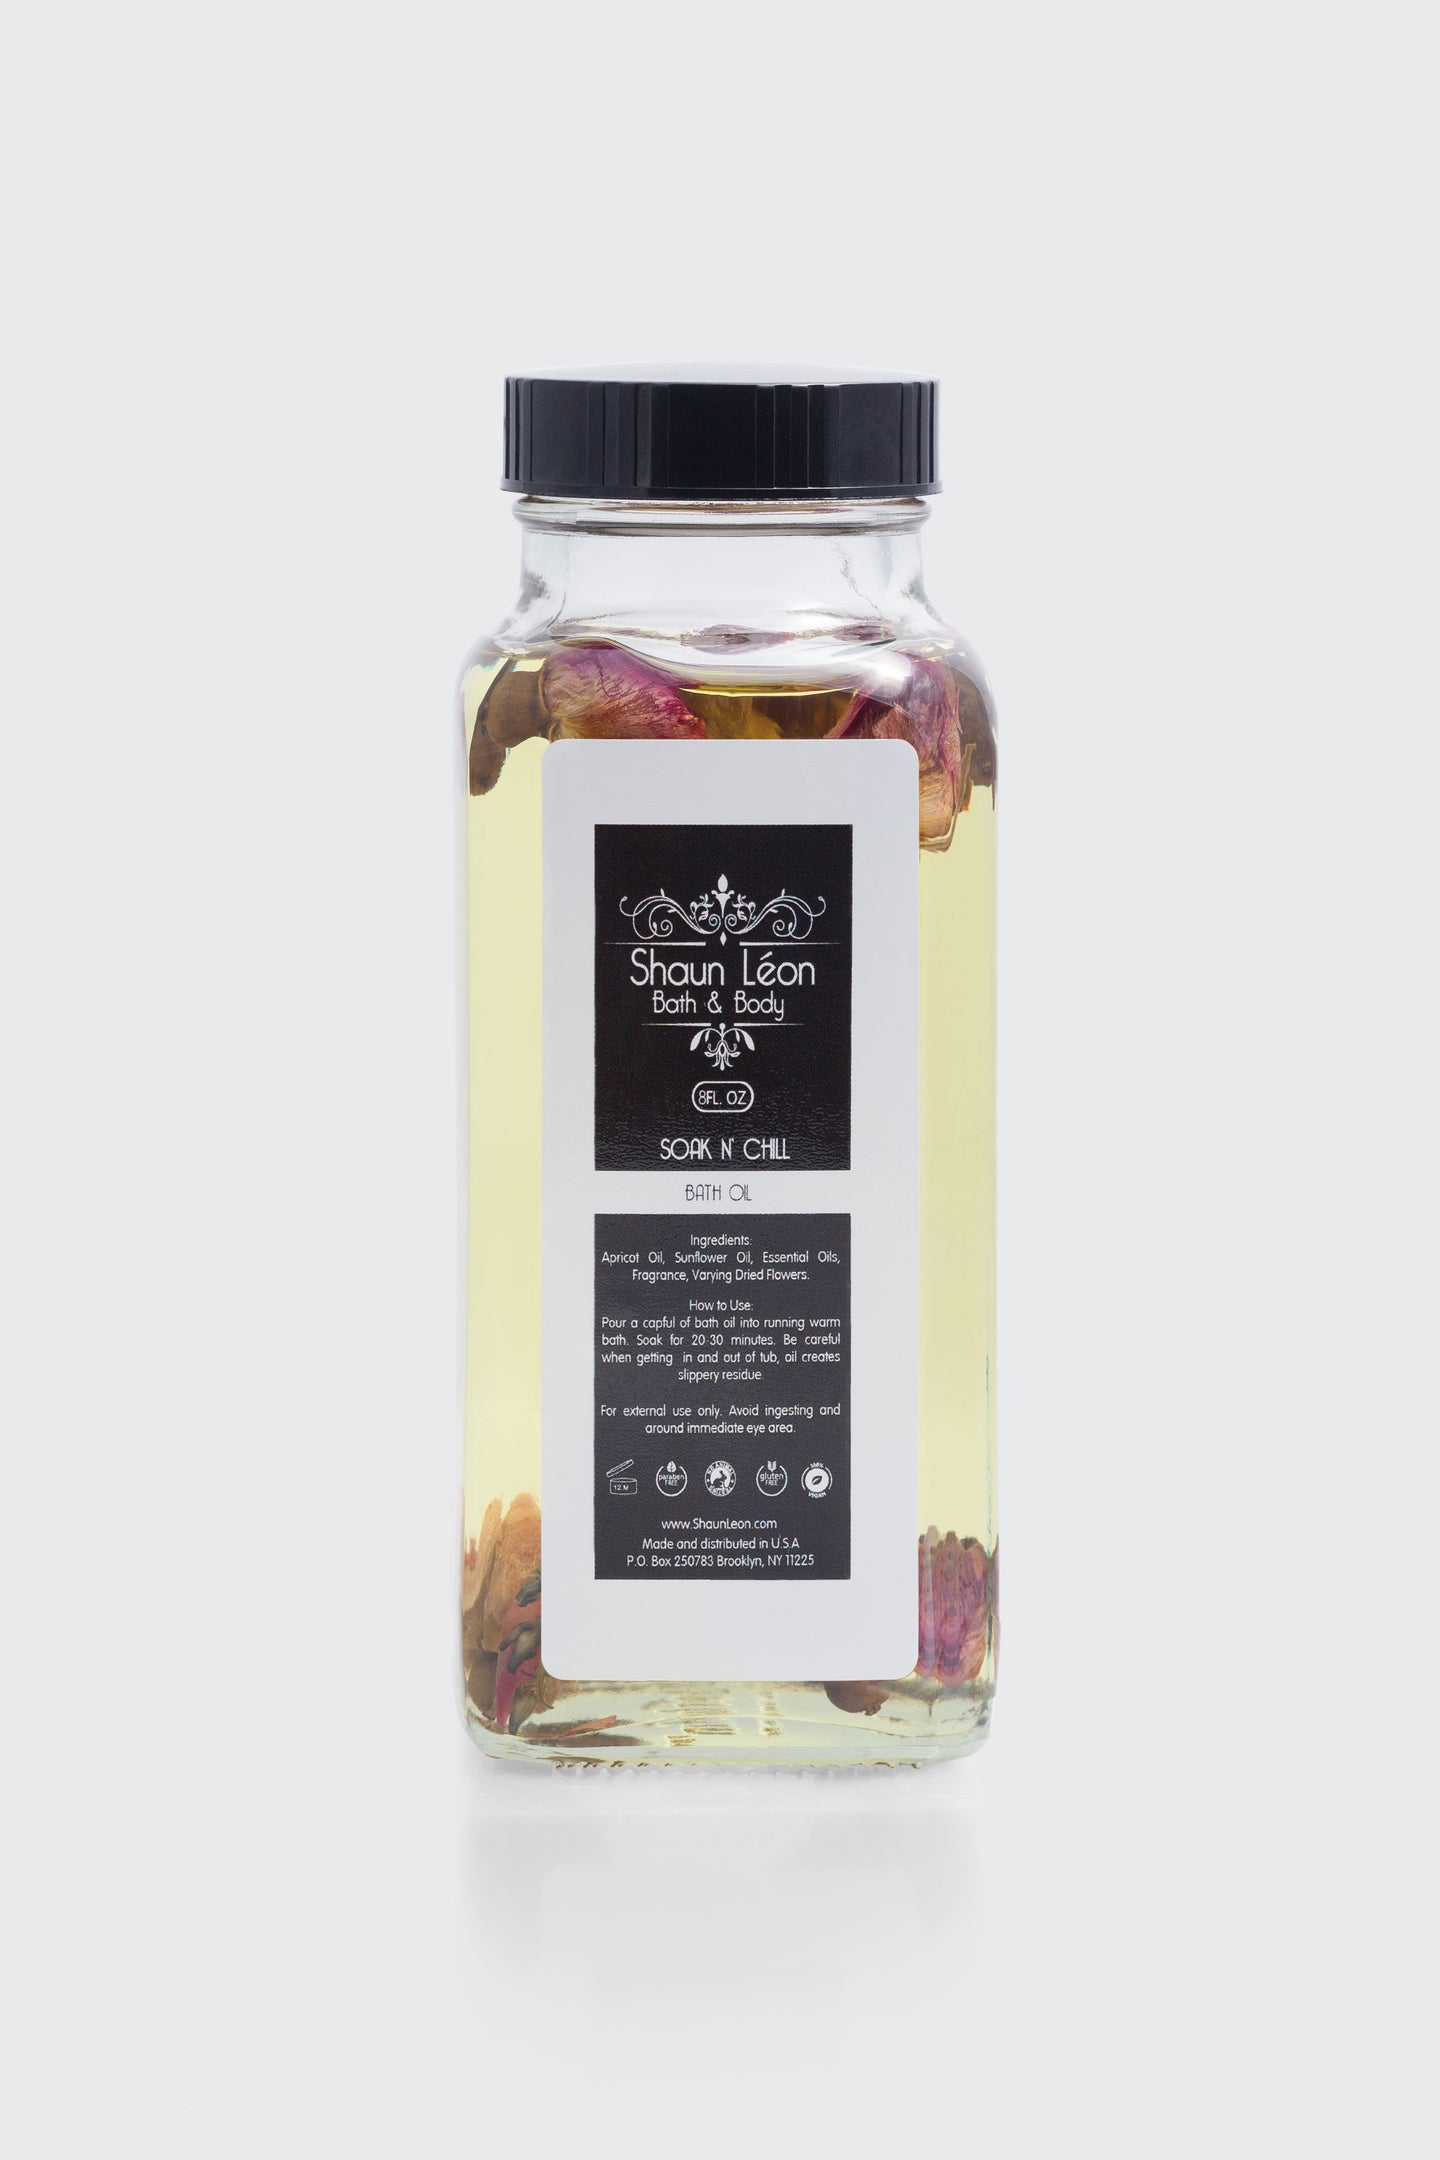 Bath oil made from natural sunflower and apricot kernal oils